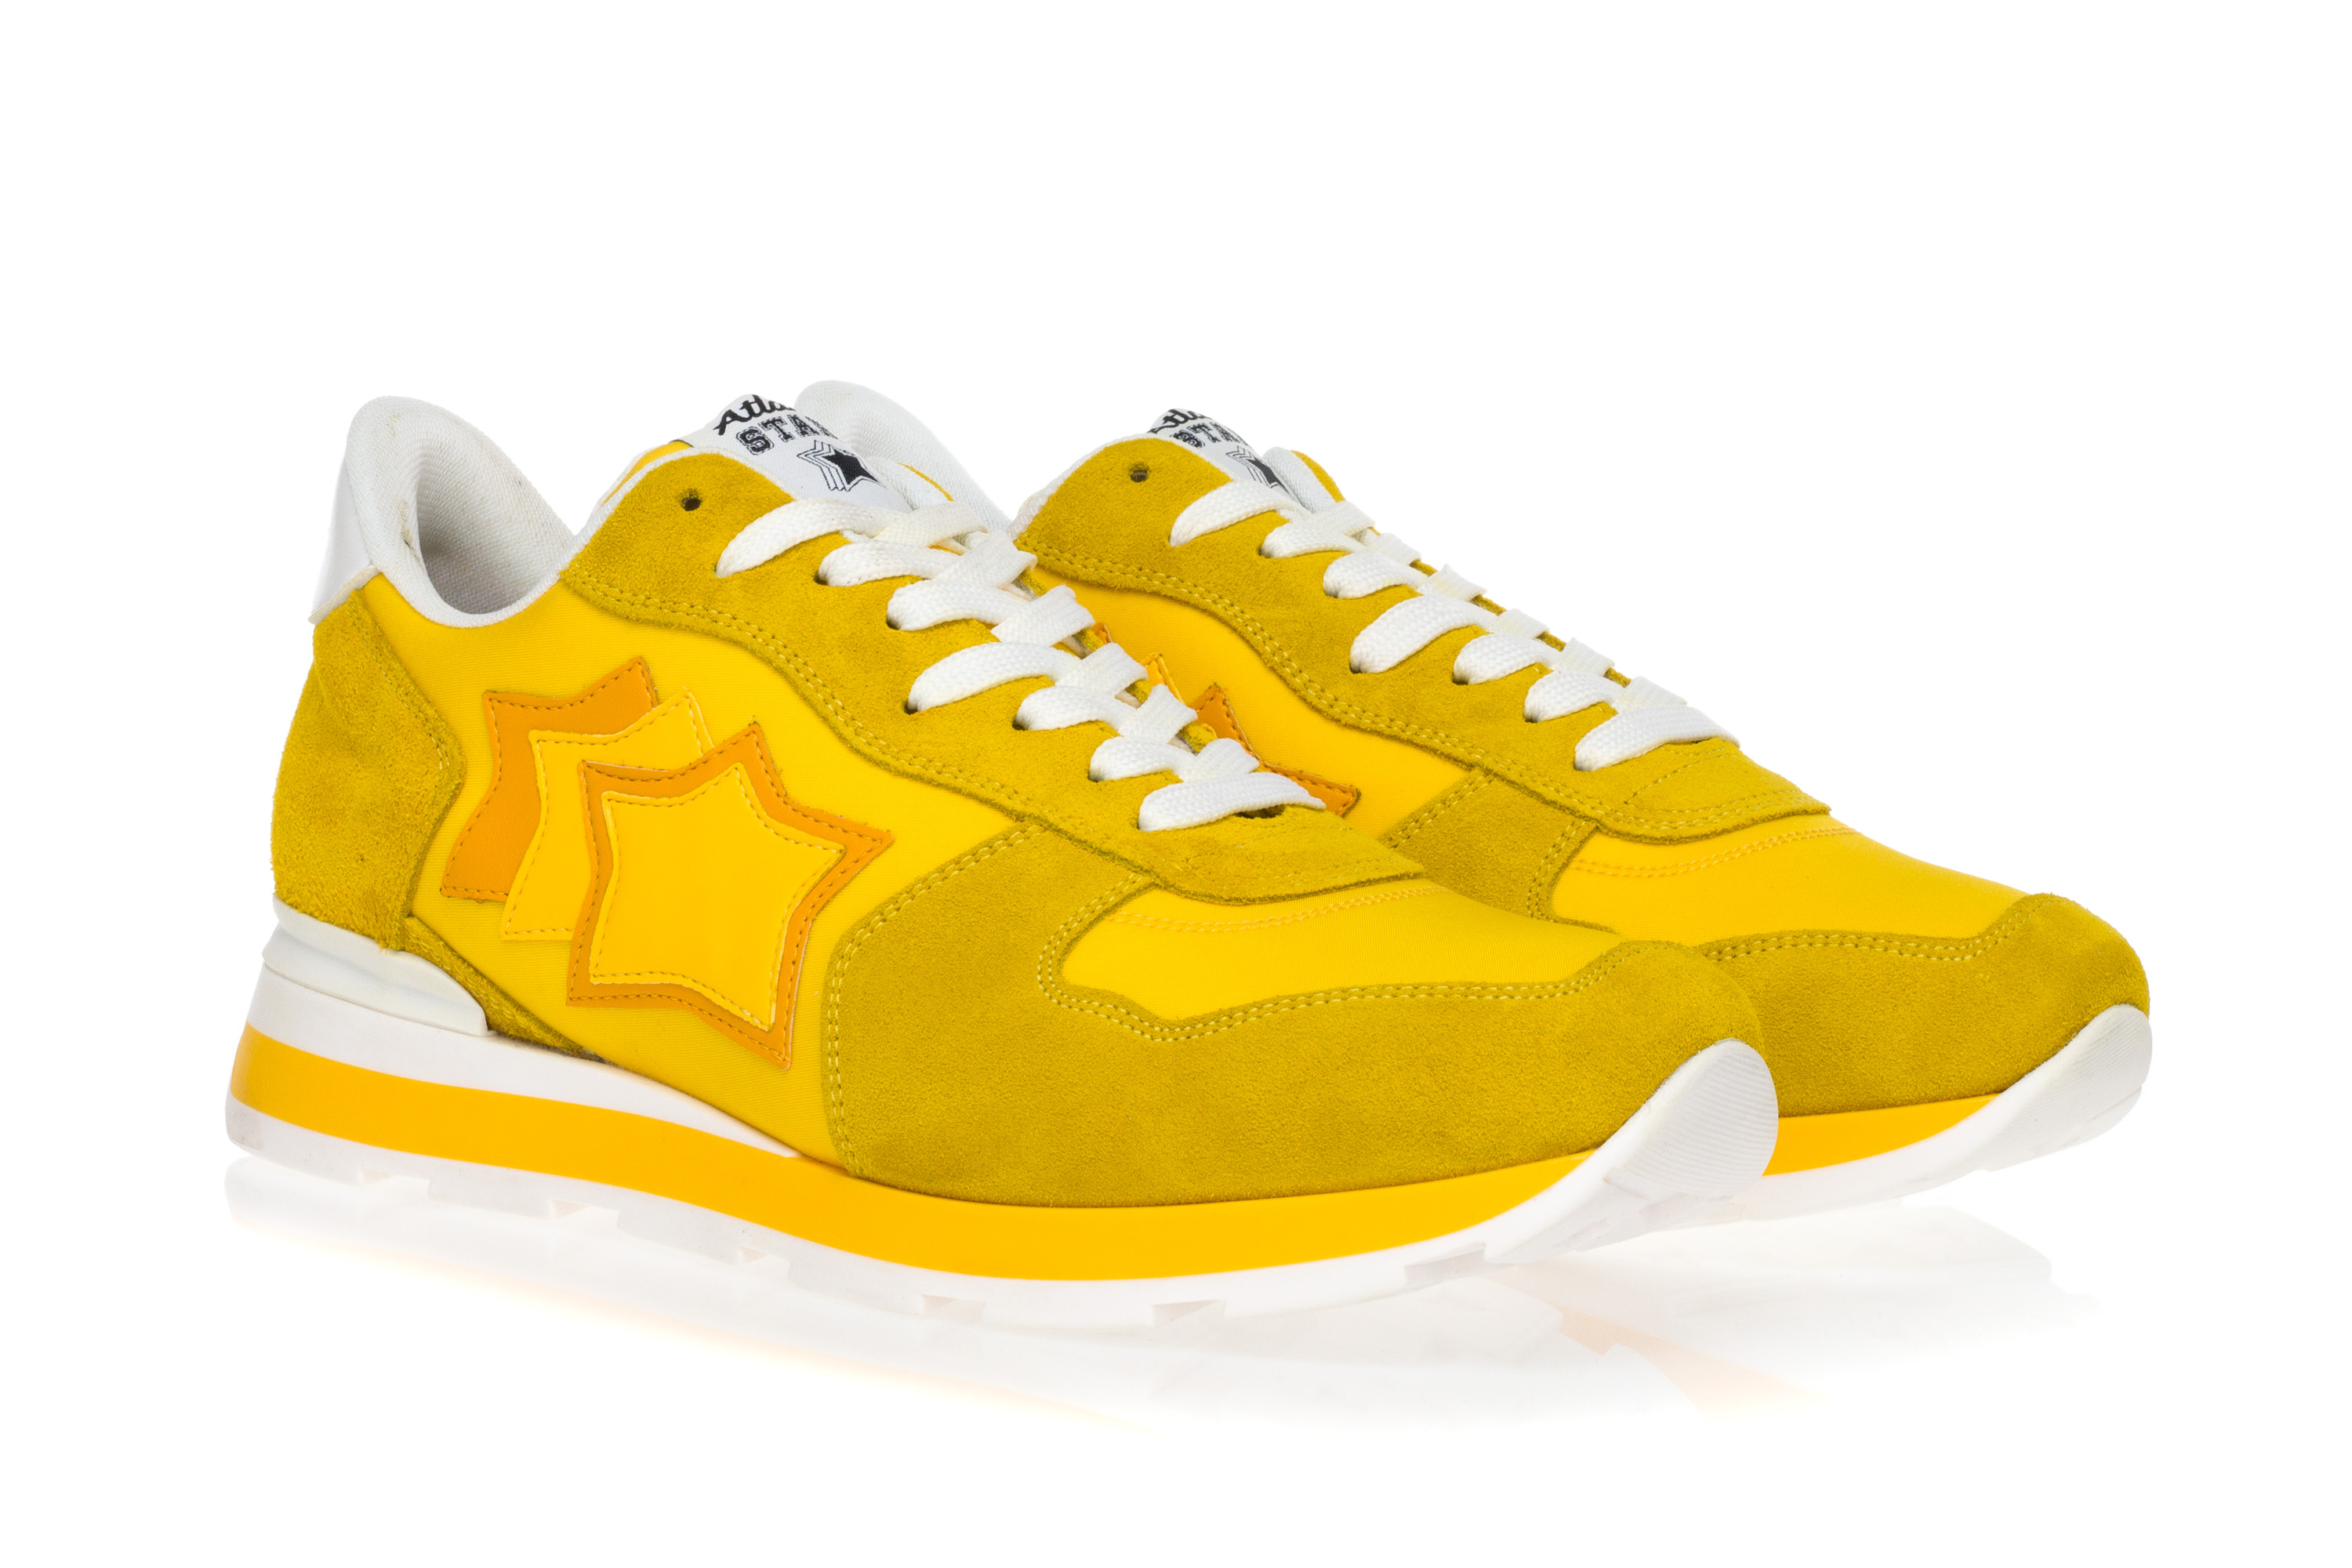 f7ff2fa11a2 ATLANTIC STARS Mens Sneakers Shoes ANTARES Yellow Suede Leather ...